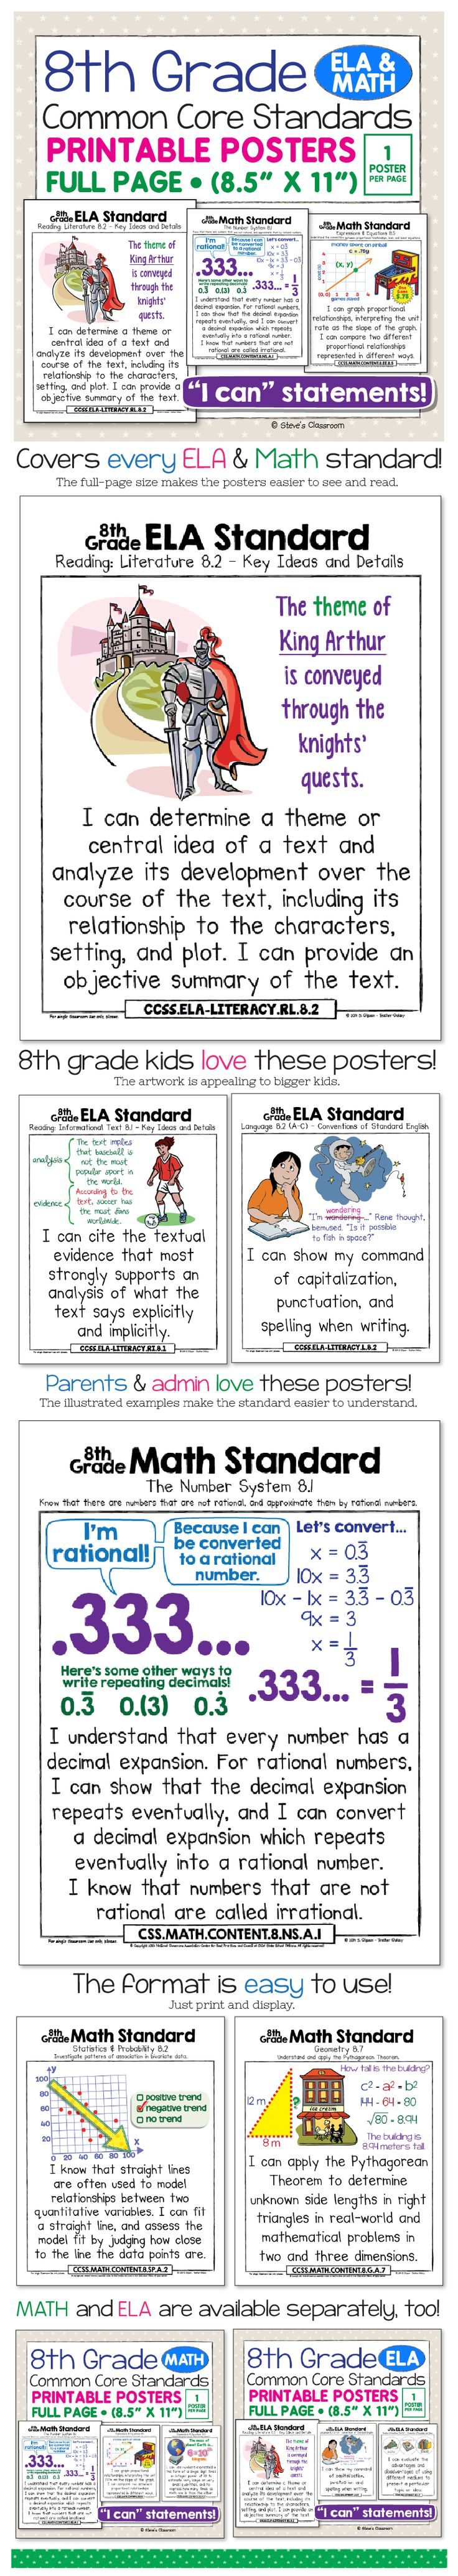 "Common Core Standards posters for 8th grade math and ela! Bring the Common Core Standards to life and make it easier to understand with age-appropriate illustrations and kid-friendly ""I can"" language. Big, colorful, age-appropriate posters for the eighth grade common core aligned courses! Very helpful for organizing curriculum."